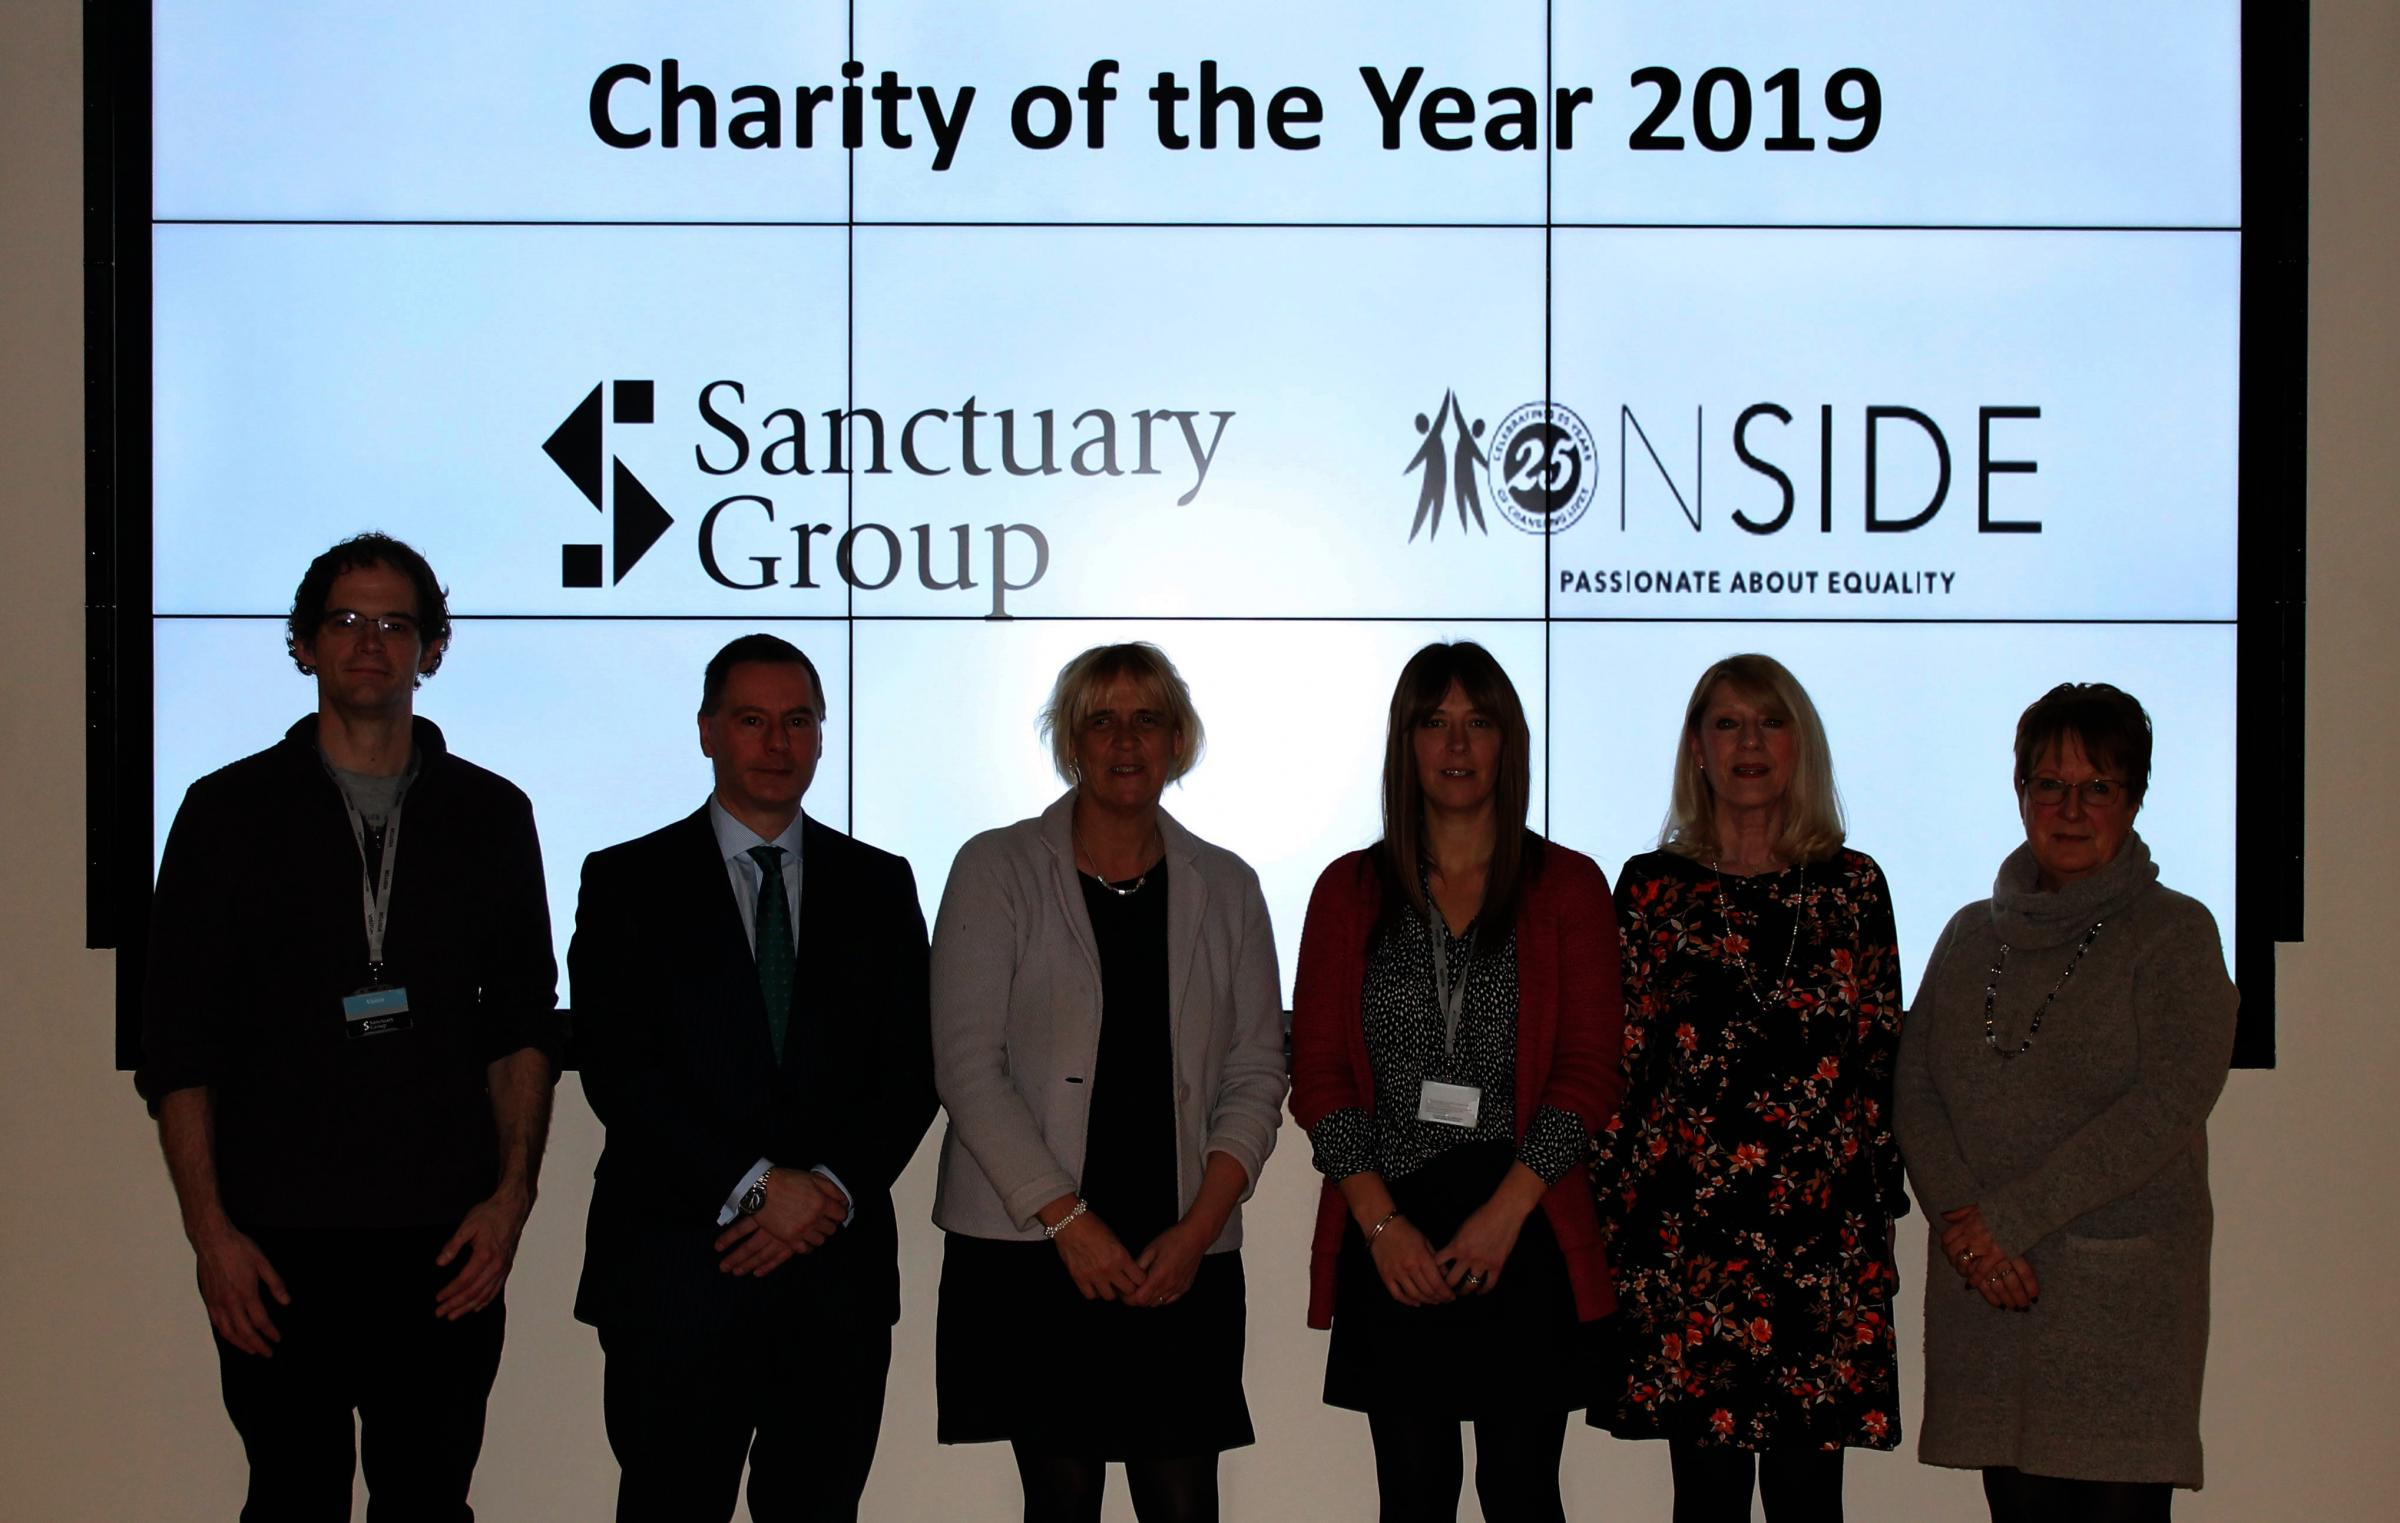 CHARITY: Sanctuary's Group Chief Executive Craig Moule (second from left) with Onside's Chief Executive Kate Harvey (third from left) and staff and service users from Onside.